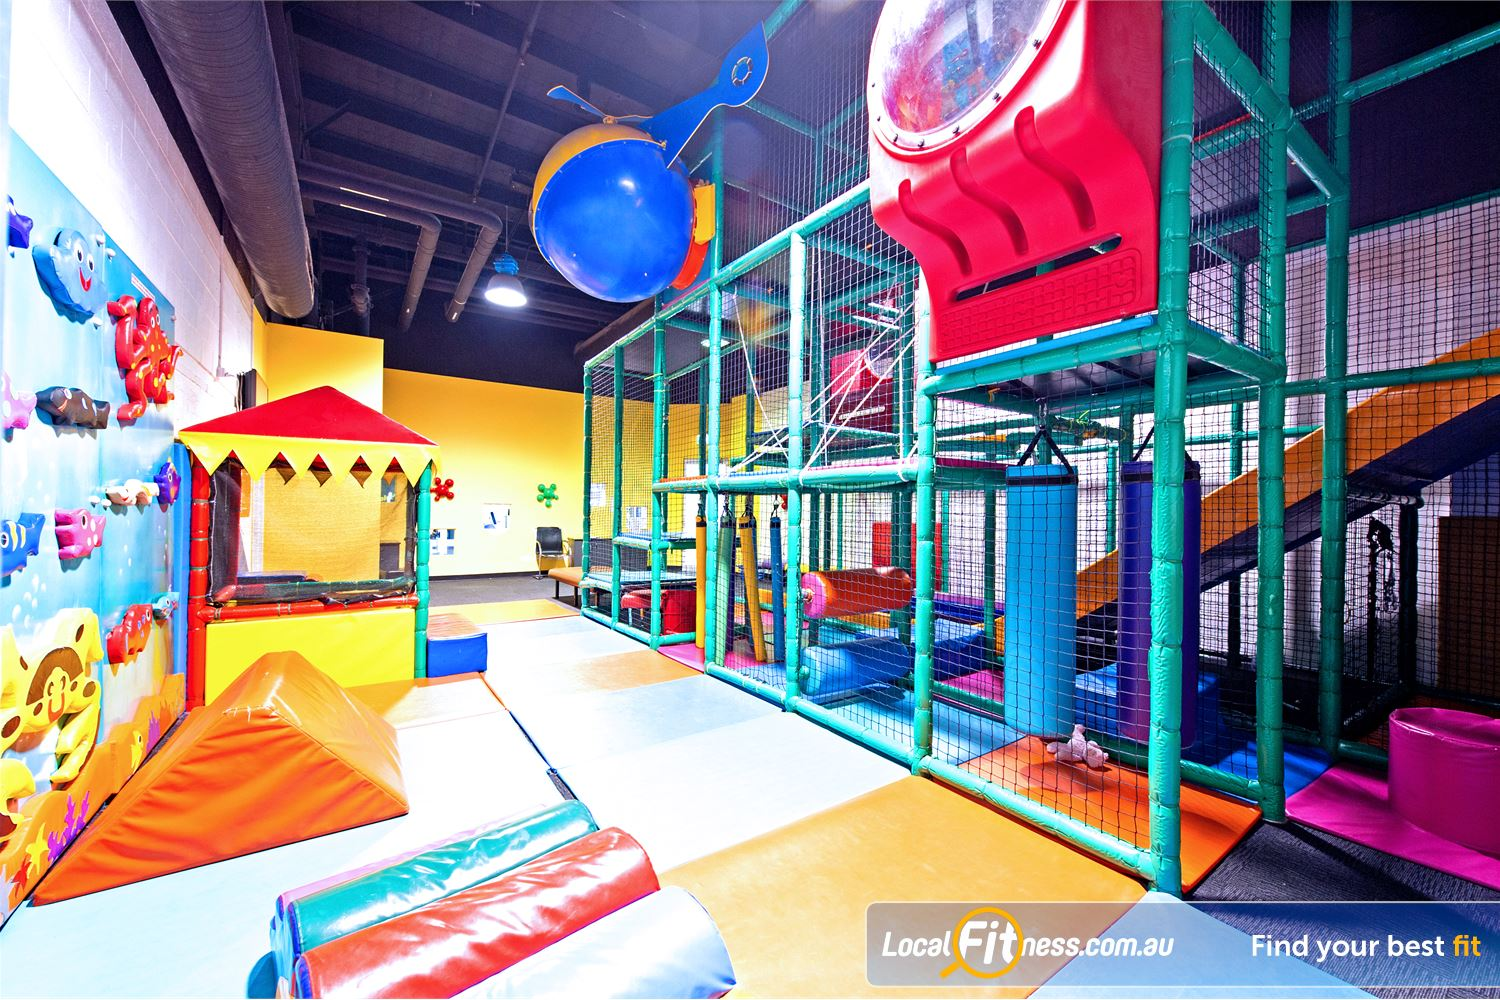 Vibe Health Clubs Near Marayong Fun fun fun at the Vibe Blacktown child care facility.